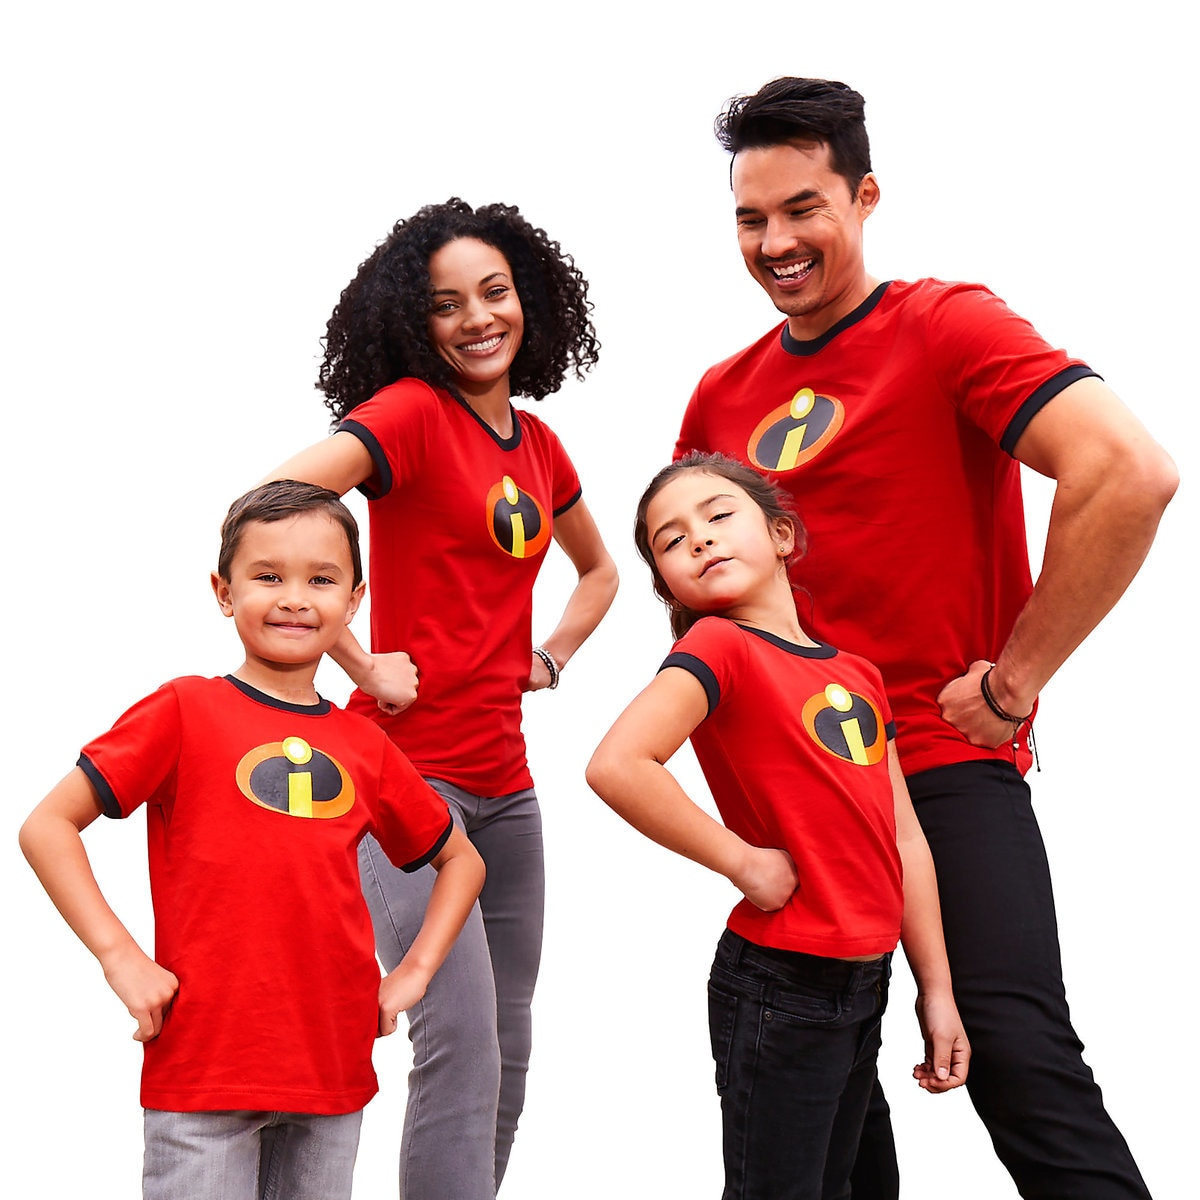 69f76a34 Product Image of Incredibles 2 Logo Ringer T-Shirt Family Collection # 1